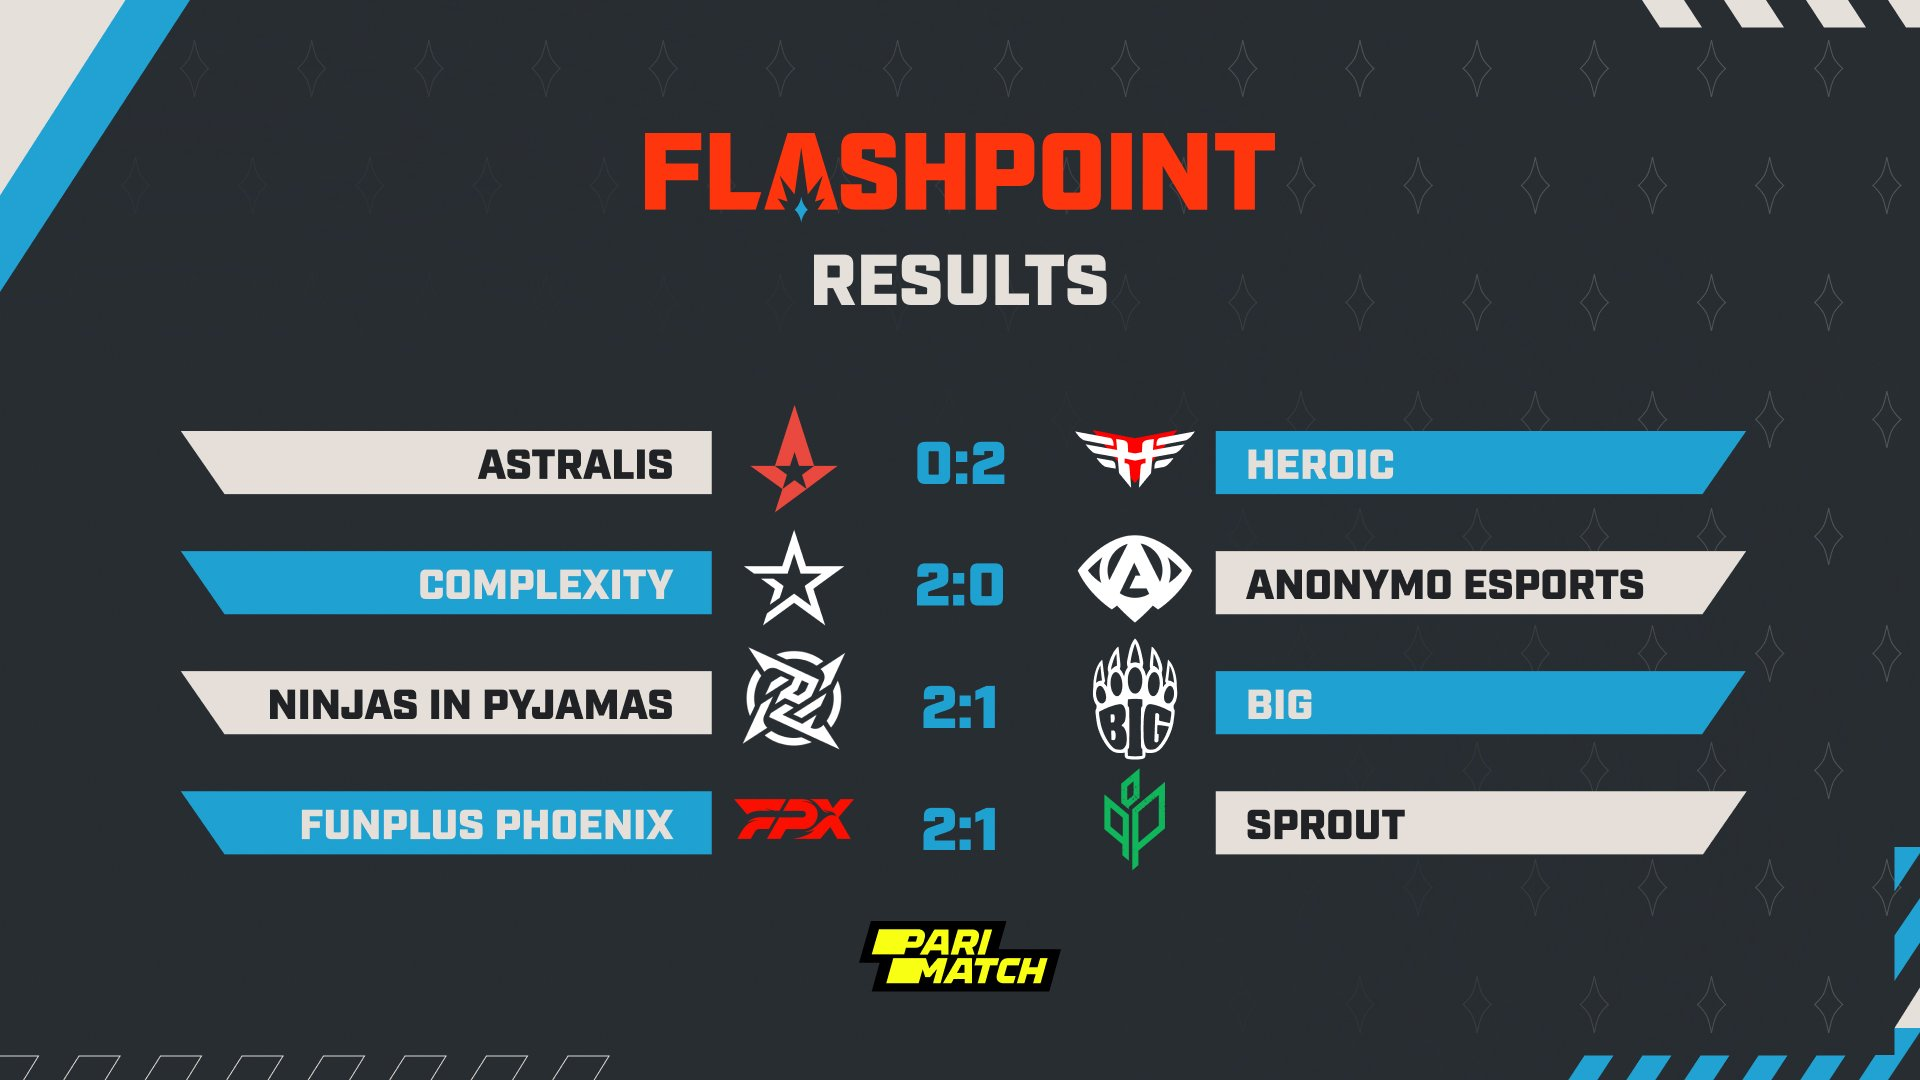 Flashpoint 3 week 3 day 2 results